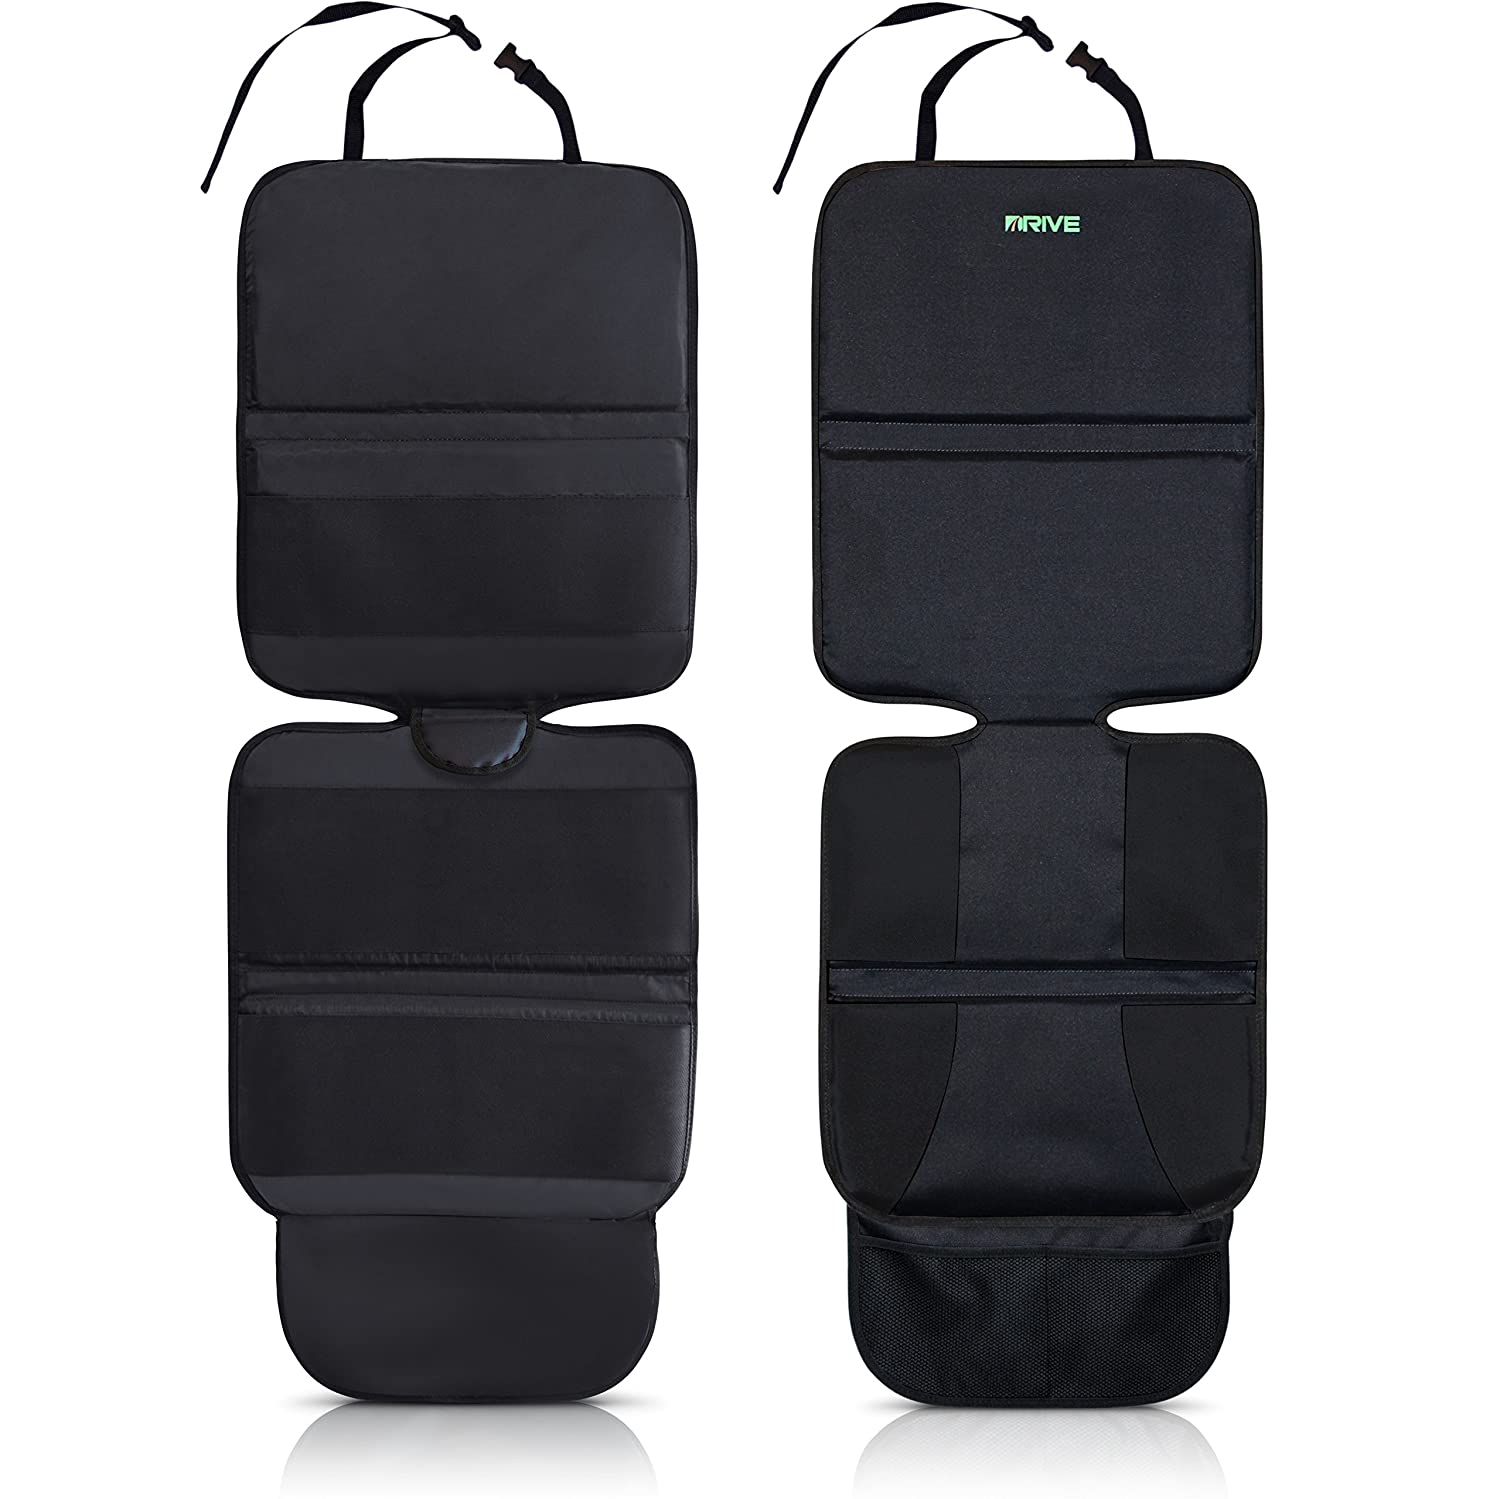 Drive Auto Products Car Seat Protector (2-Pack), Black - Ultimate Neoprene Backing is Best Protection for Child & Baby Cars Seats, Dog Mat - Cover Pad Protects Automotive Vehicle Upholstery Car Seat Protector 2P Black